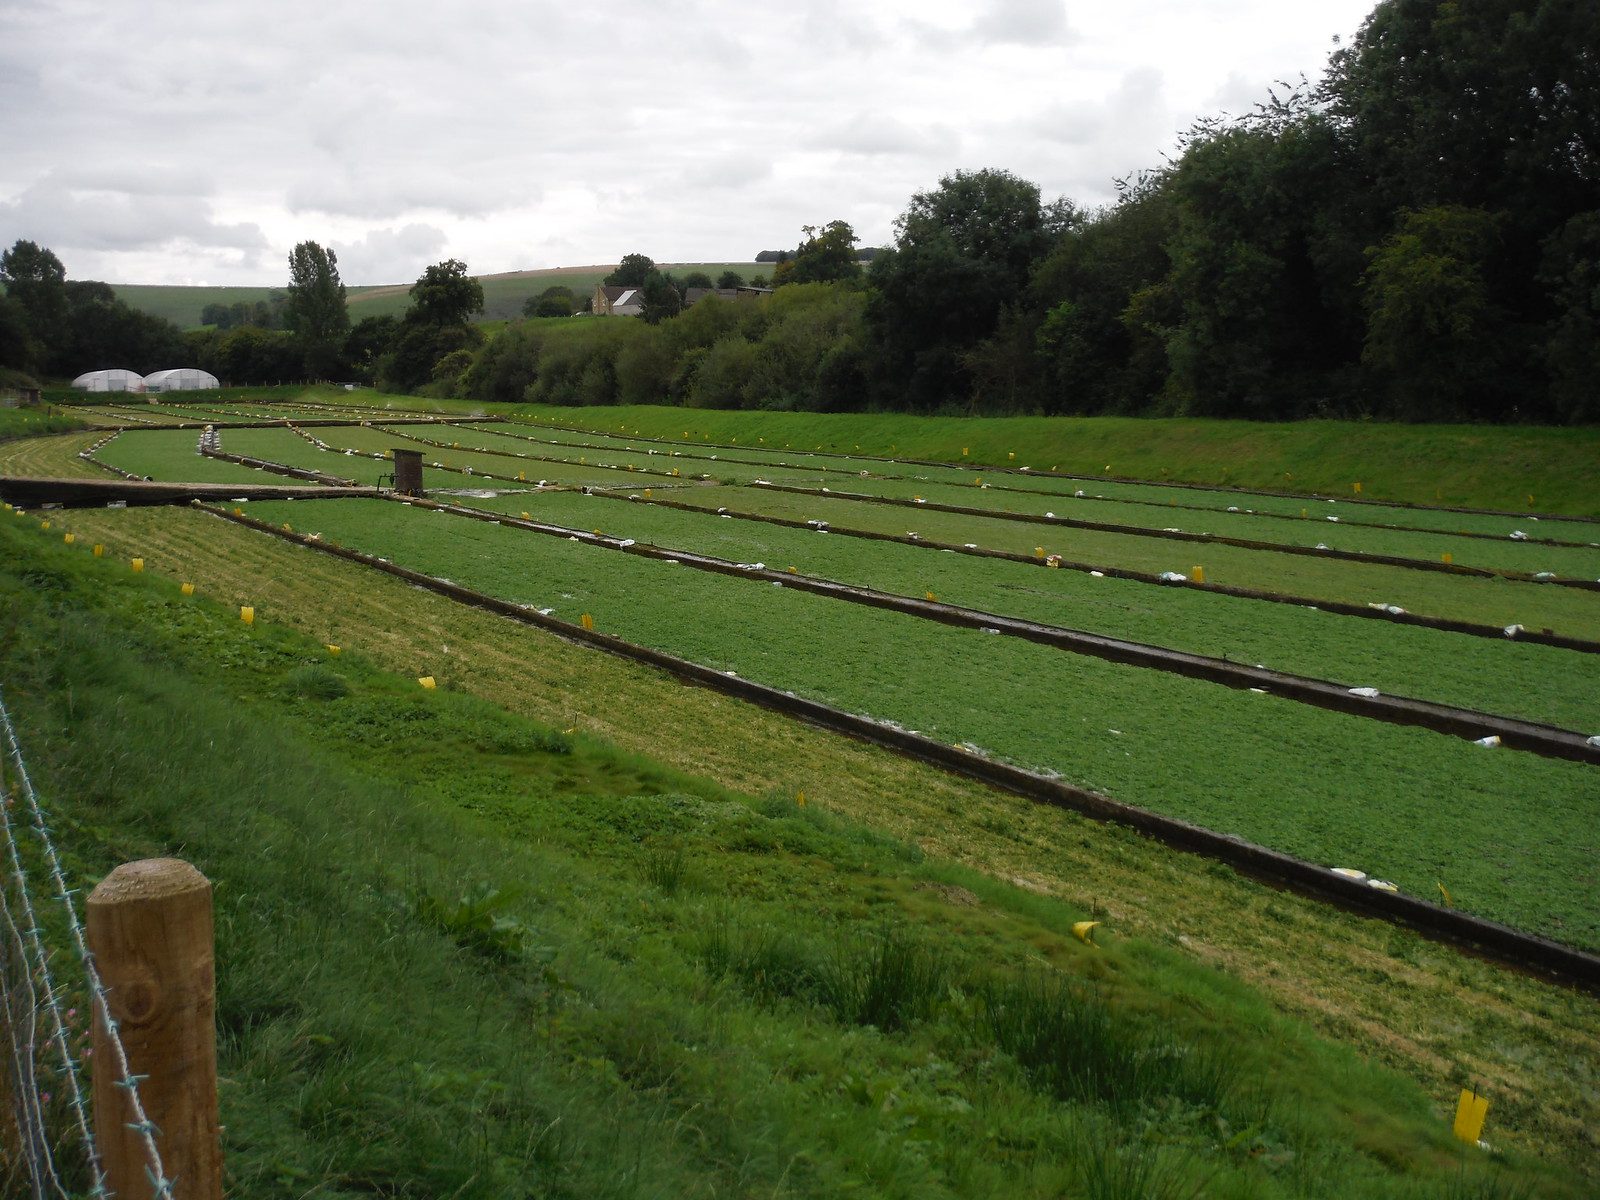 Watercress Farm, Detail SWC Walk 251 Tisbury Circular via Ludwell and Berwick St. John